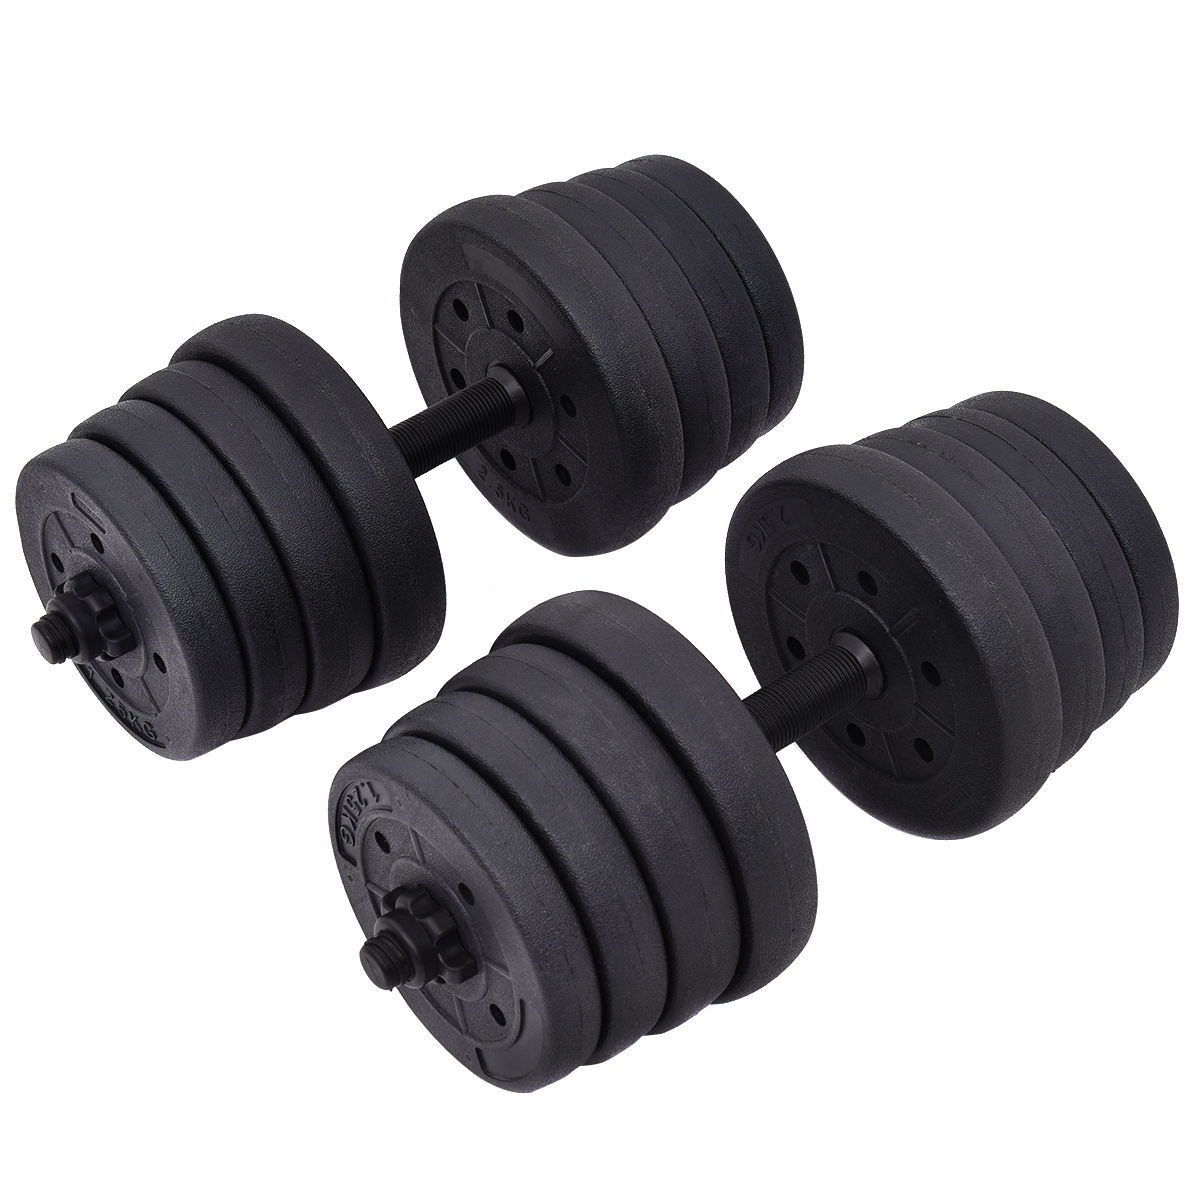 Costway 66LB Weight Dumbbell Set Adjustable Cap Gym Barbell Plates Body Workout Training by Costway